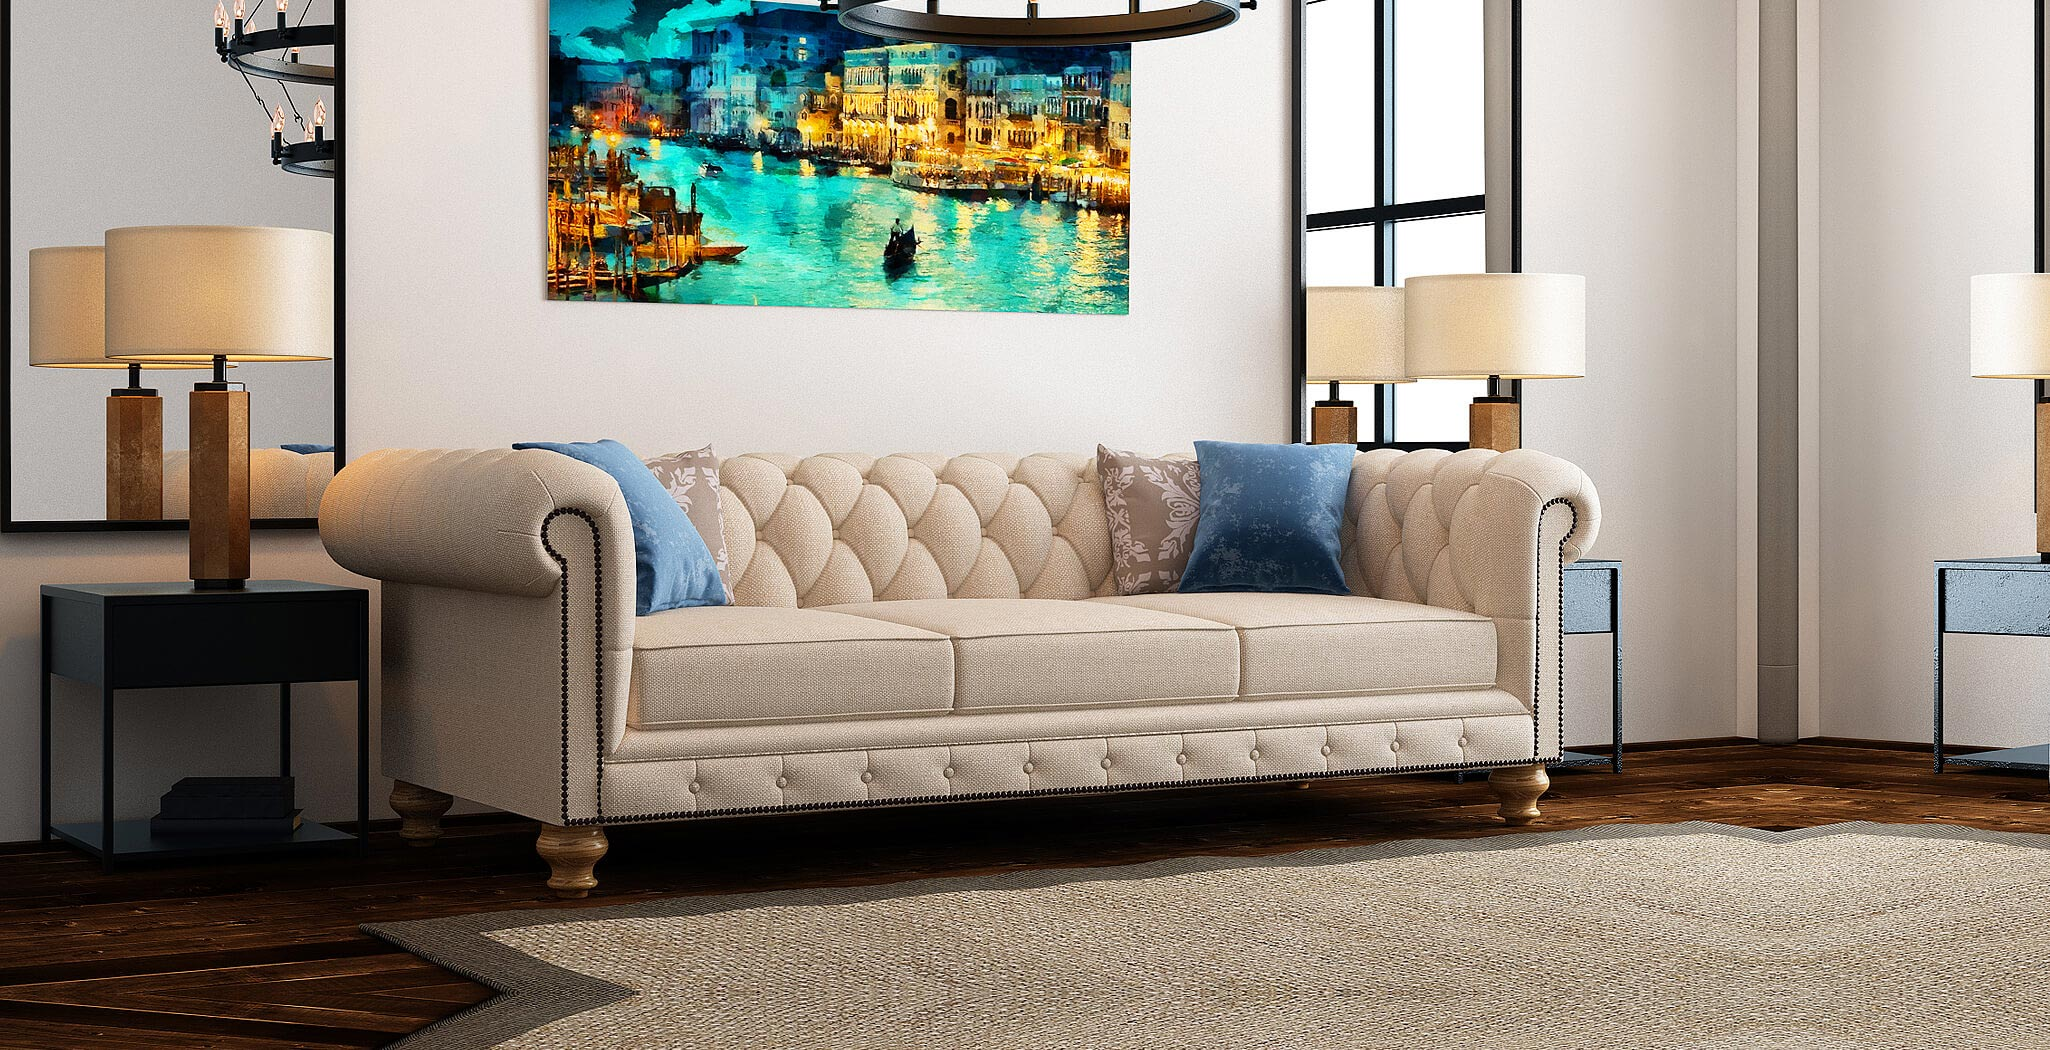 bordeaux sofa furniture gallery 1